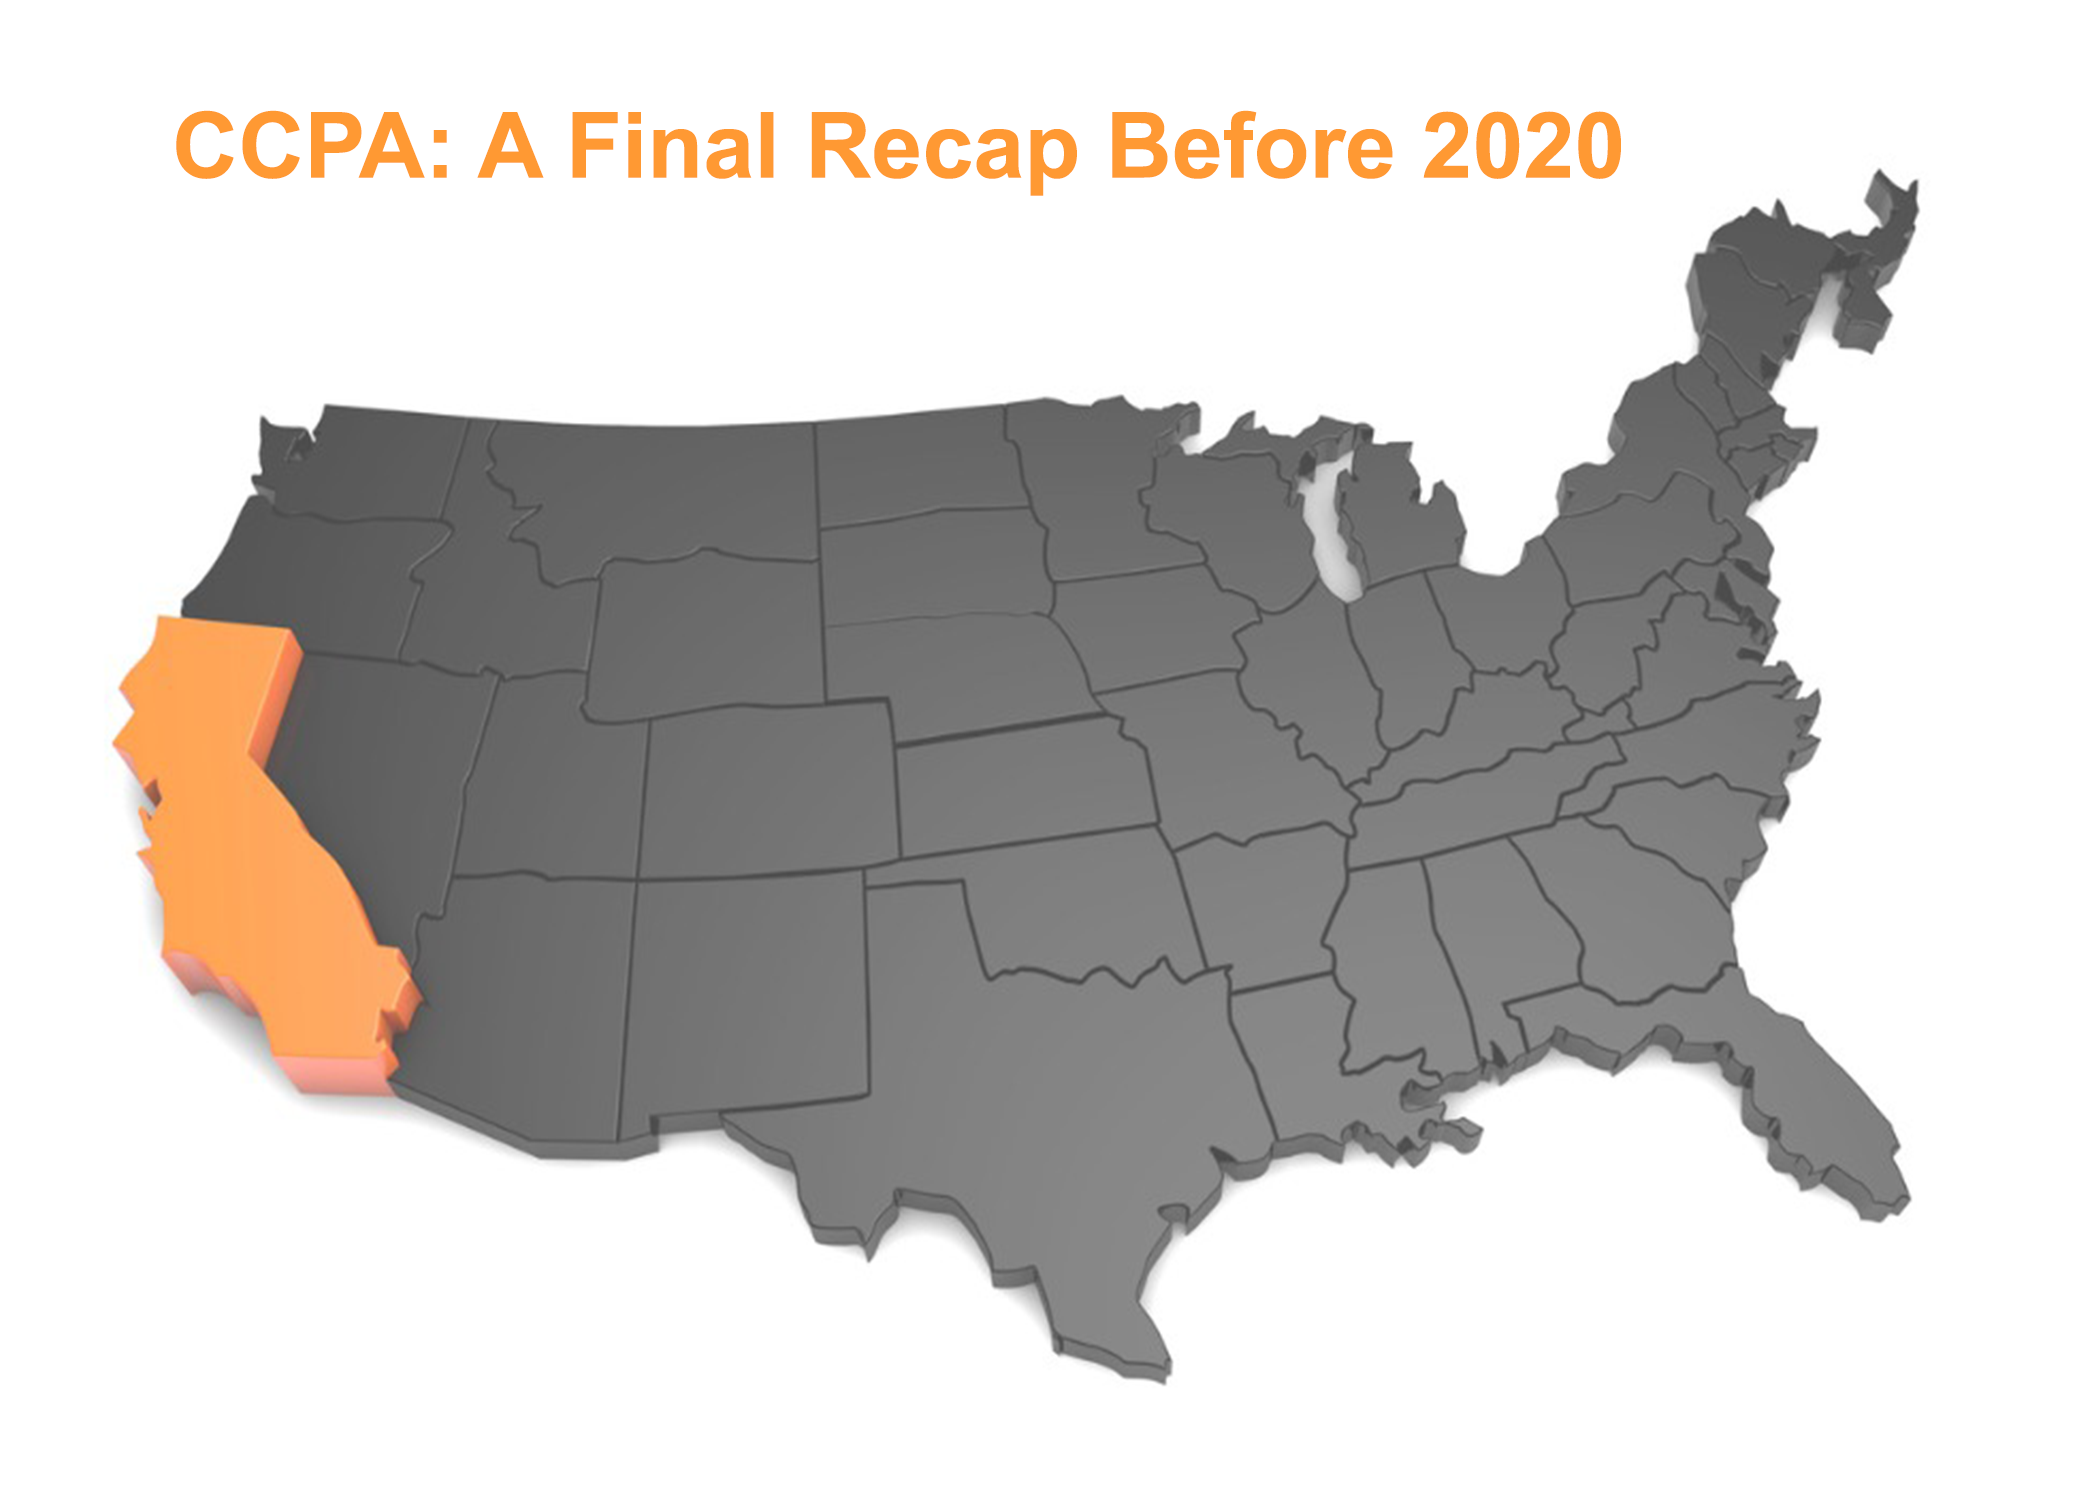 CCPA: A Final Recap Before 2020